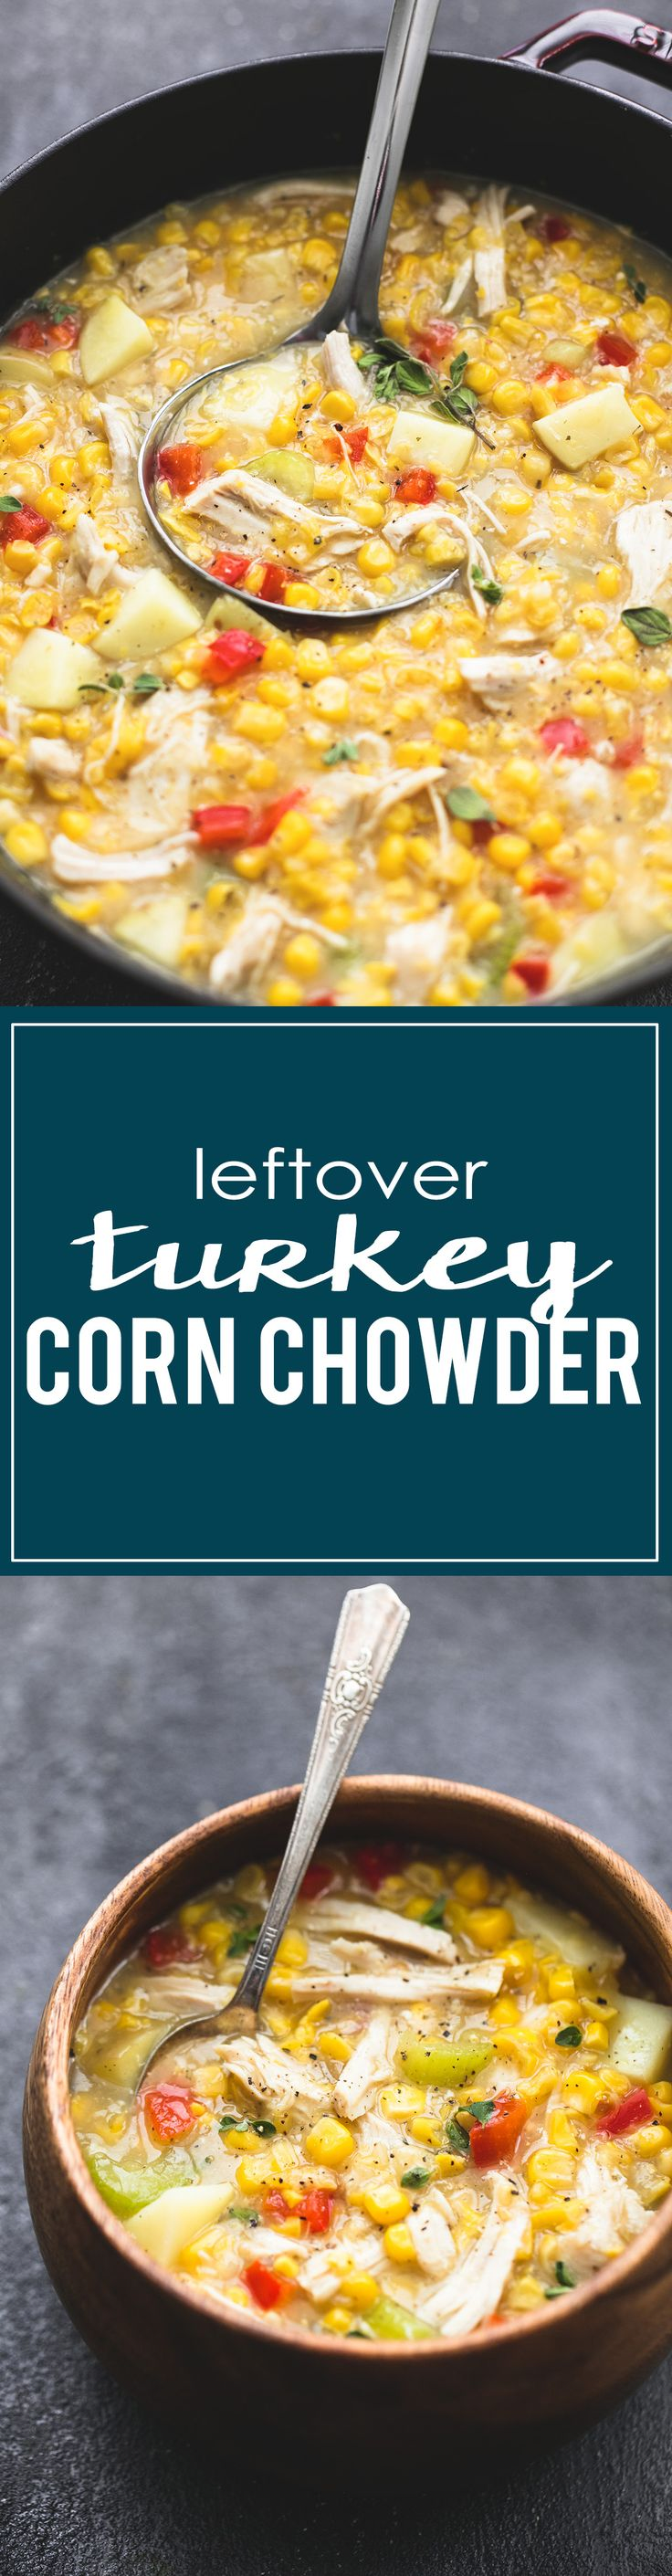 Leftover Turkey (or chicken) Corn Chowder | lecremedelacrumb.com